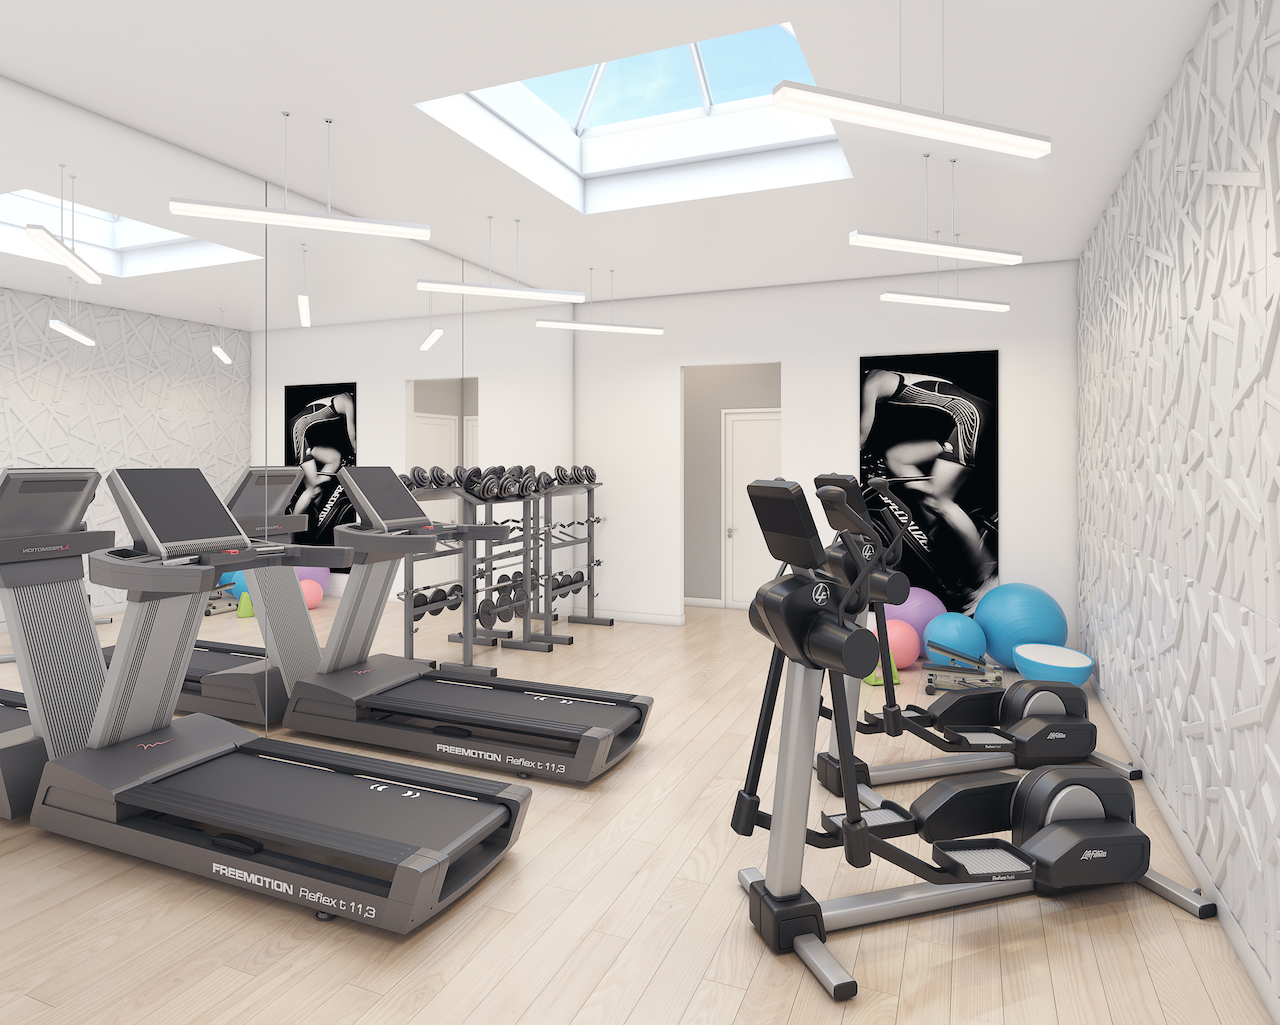 Rendering of Amsterdam Urban Towns O'Connor Drive interior gym.